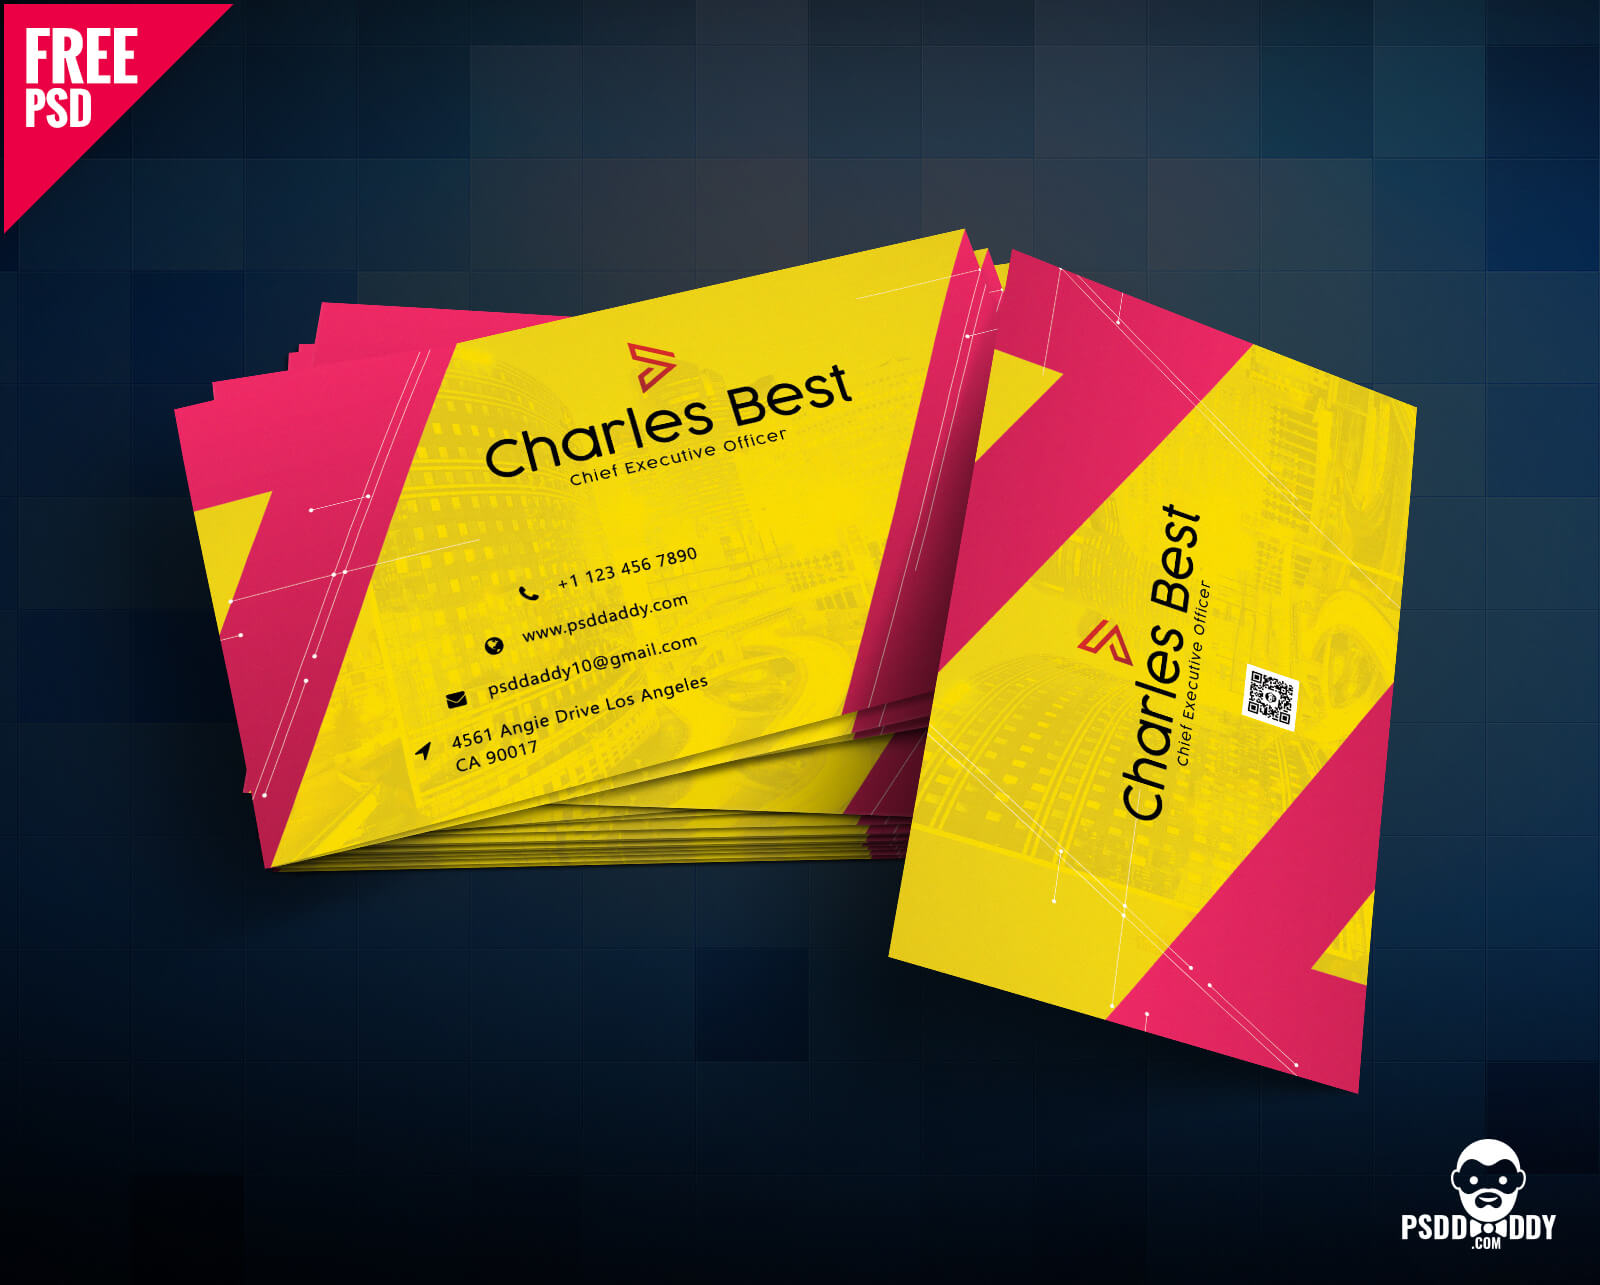 Download] Creative Business Card Free Psd | Psddaddy with regard to Template Name Card Psd